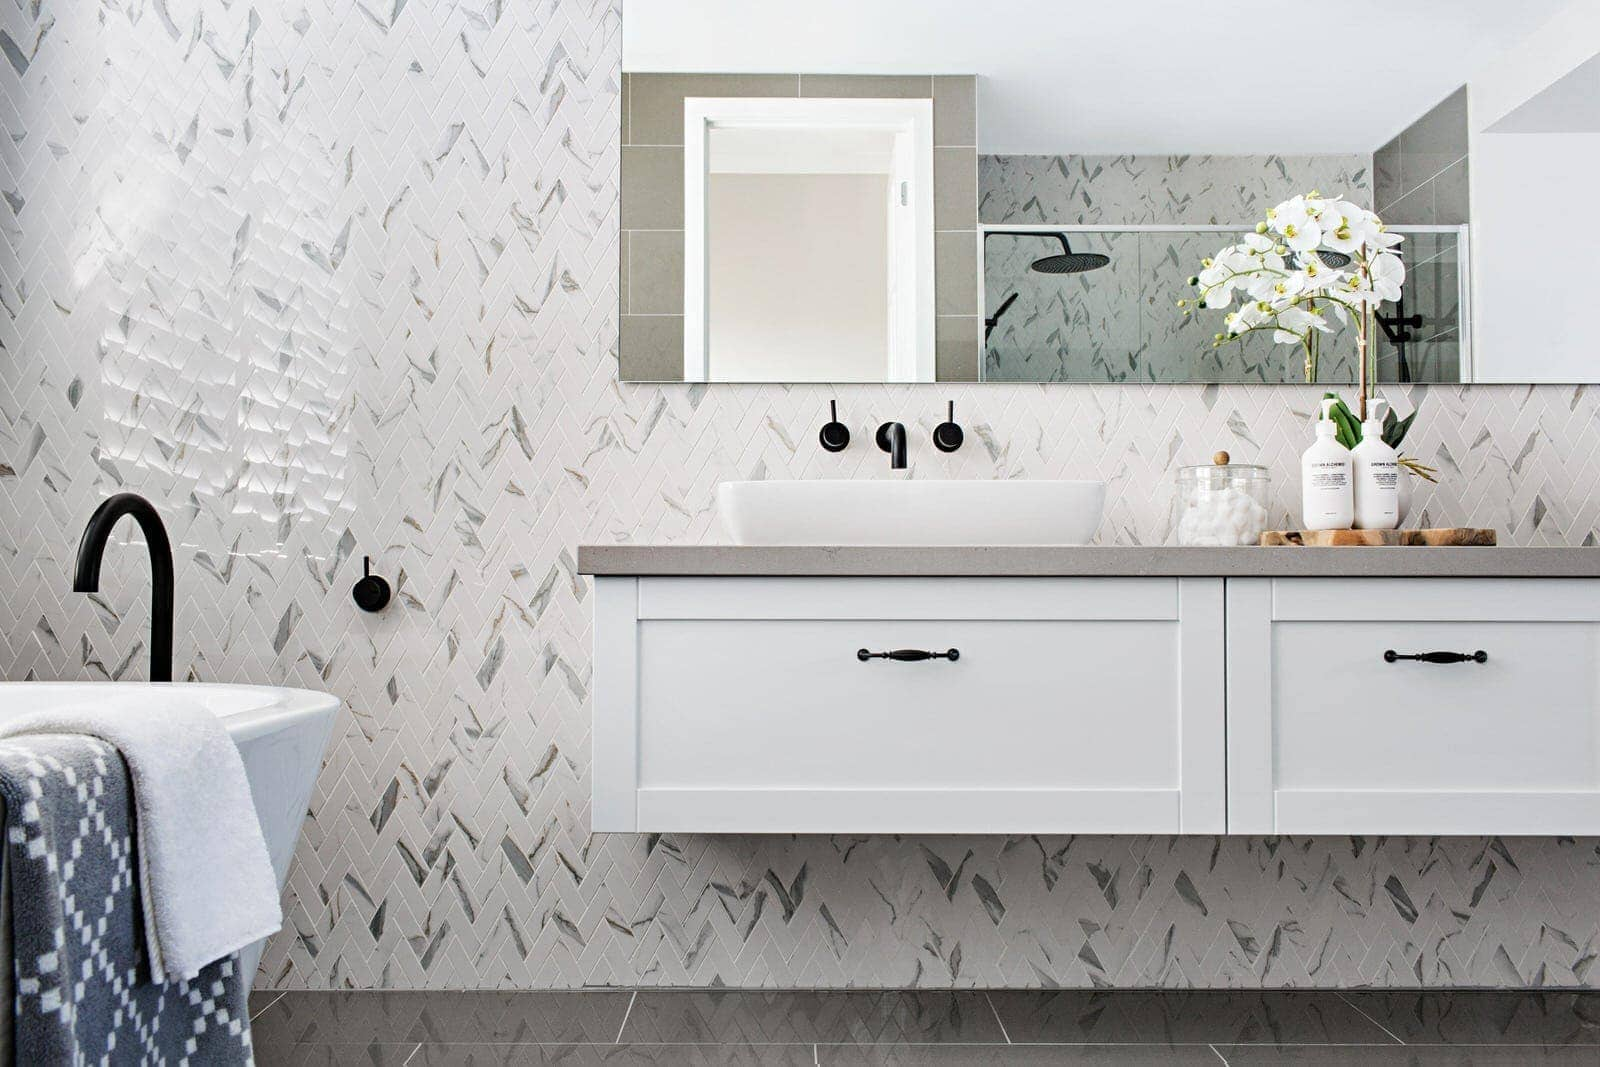 metricon hamptons style bathroom with marble herringbon tiles and floating vanity